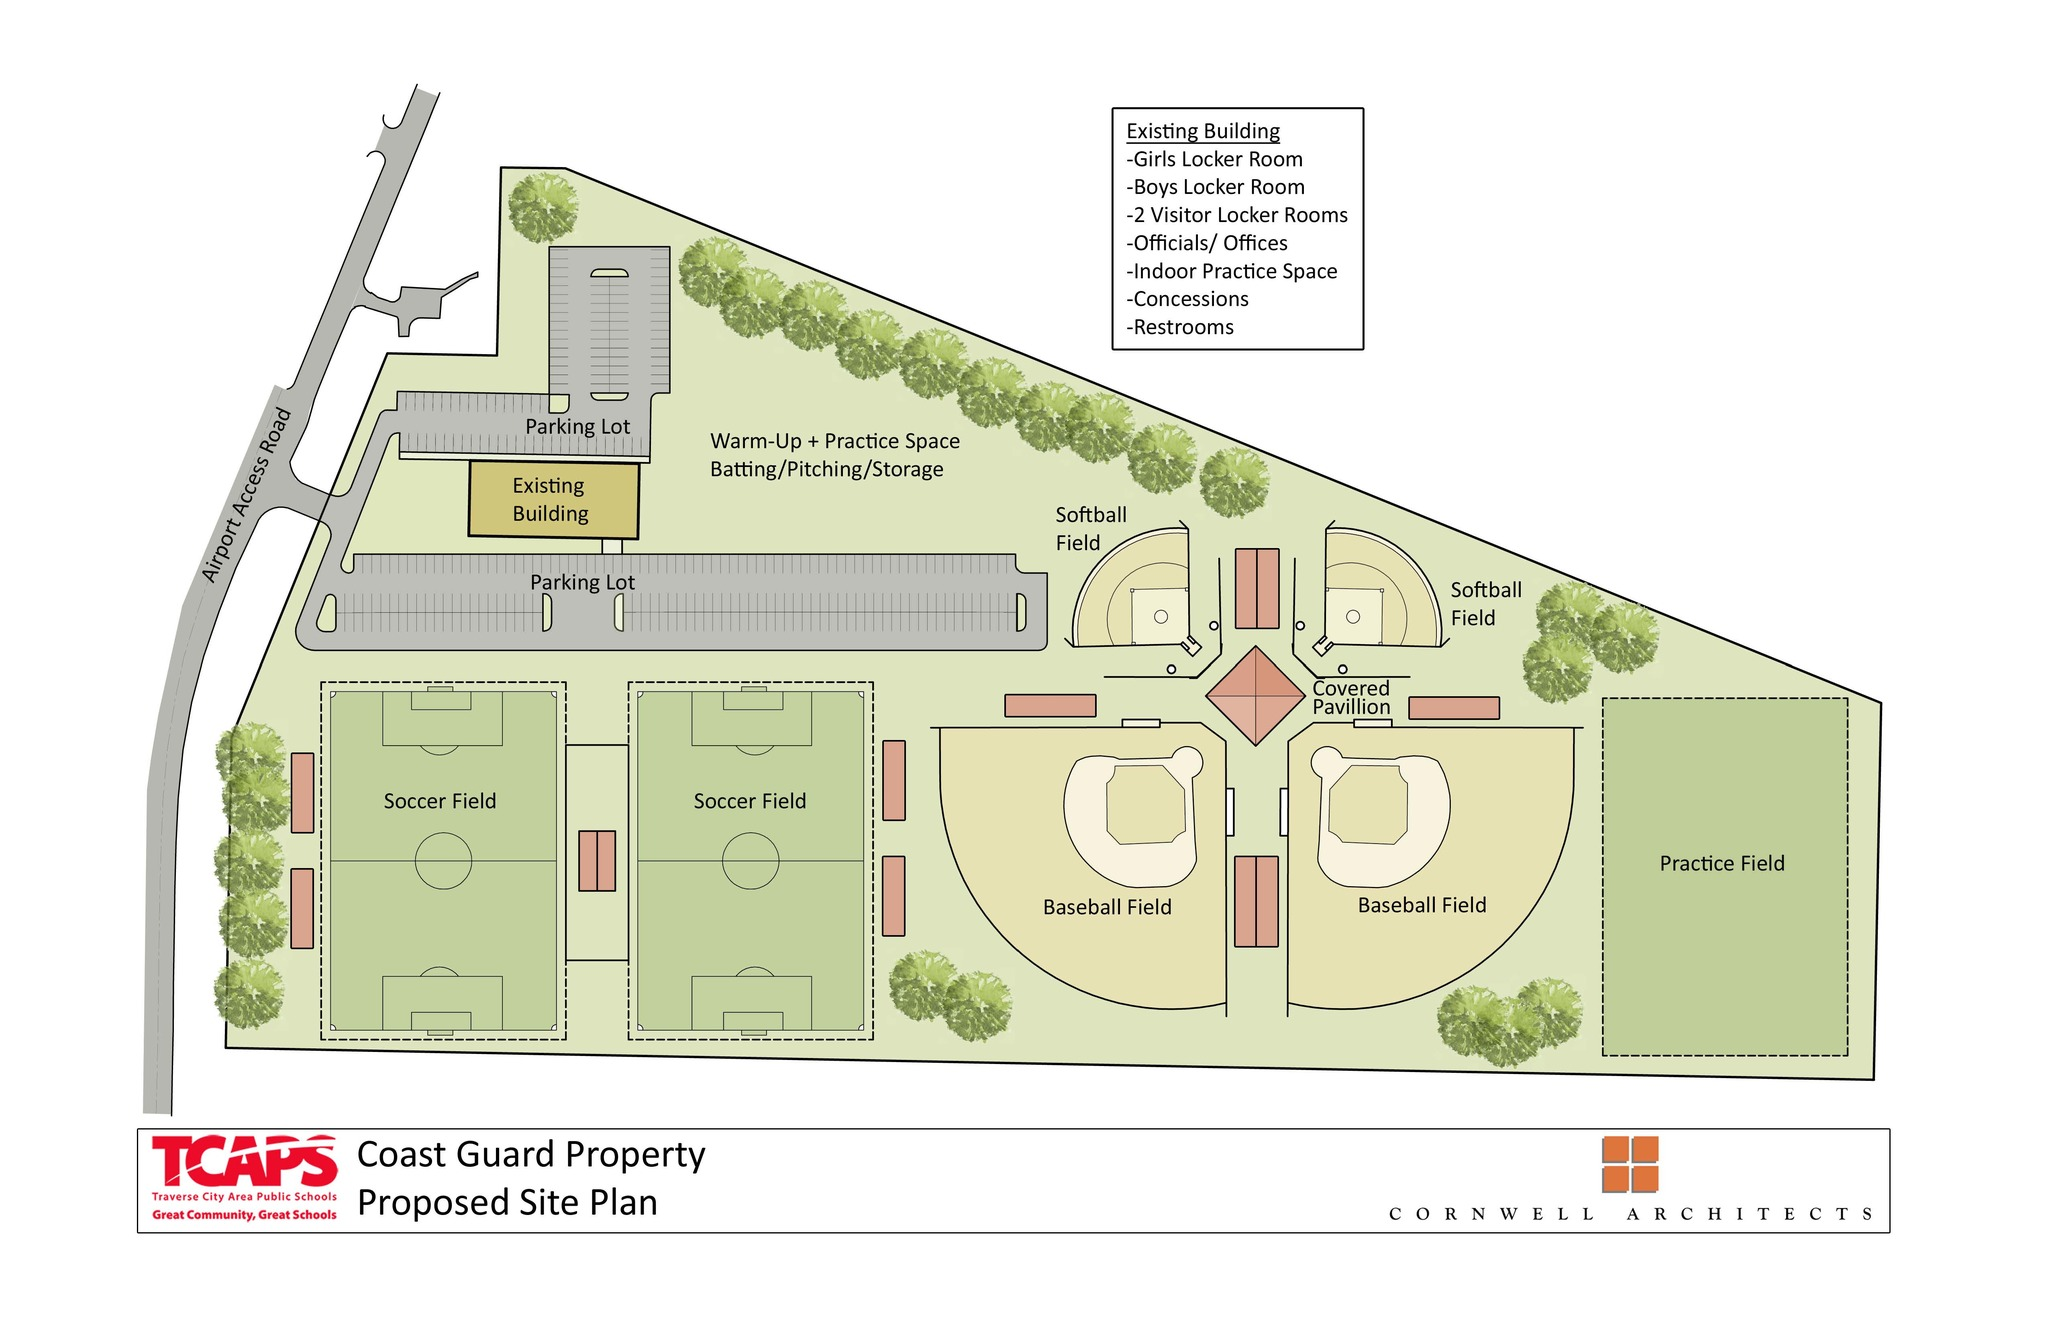 proposed coast guard athletic site plans